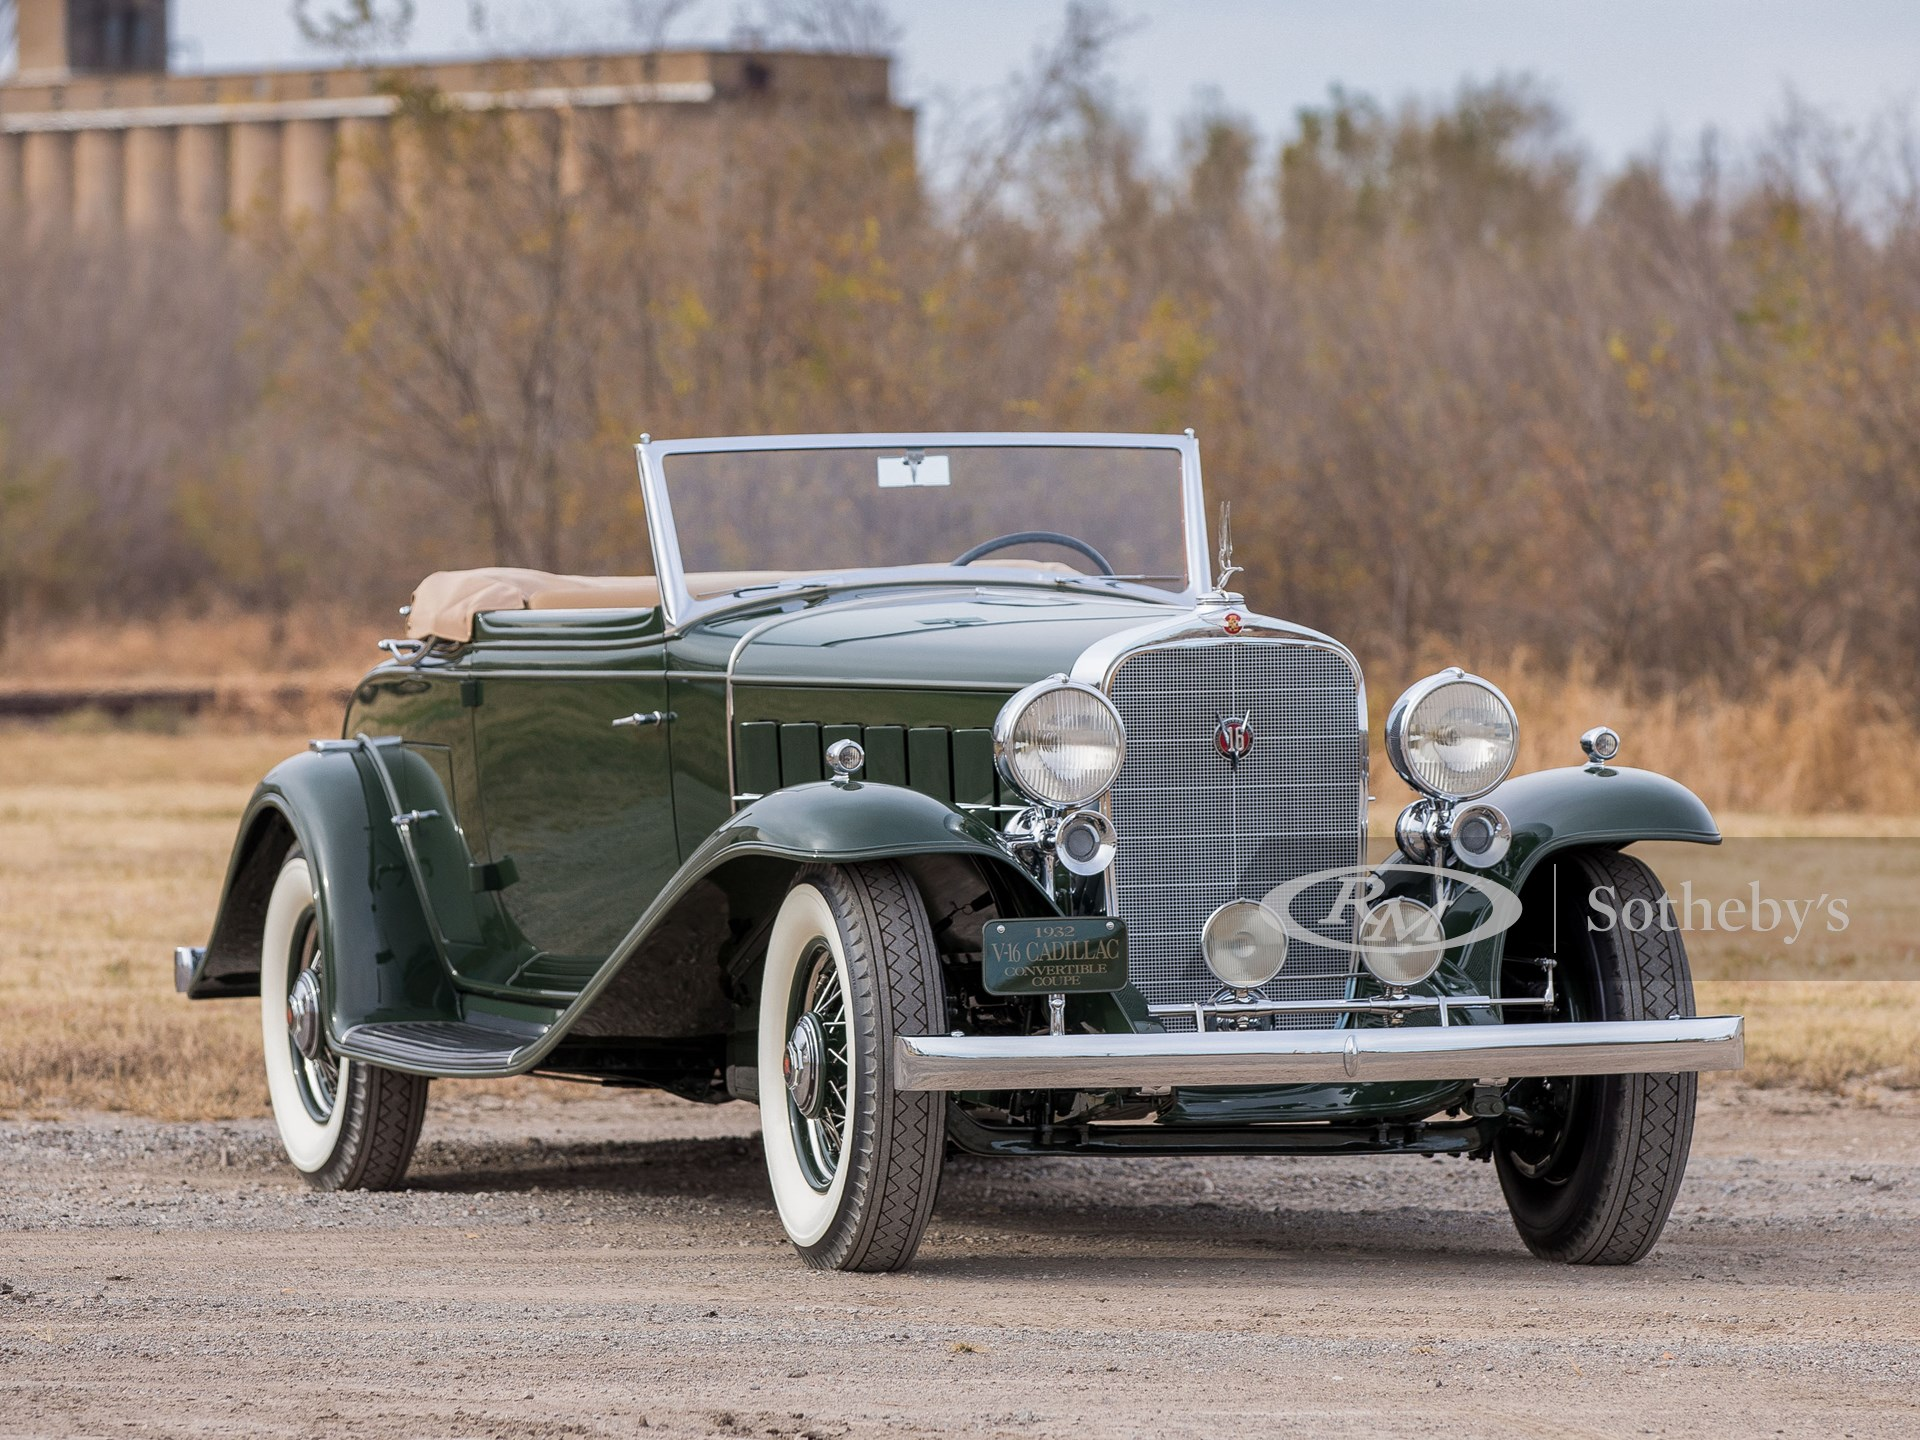 1932 Cadillac V16 Convertible Coupe by Fisher